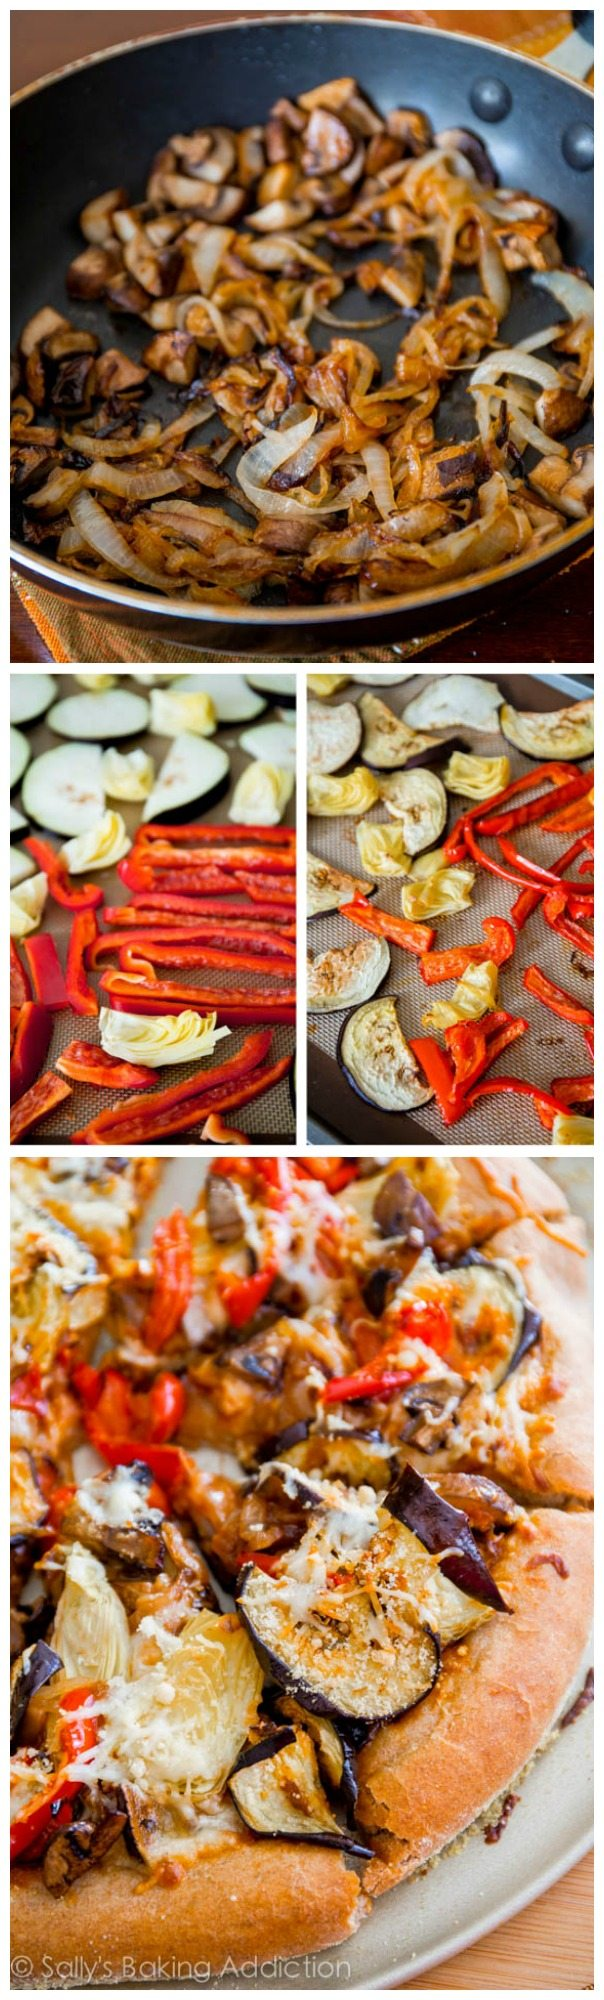 Roasted Vegetable Whole Wheat Pizza made with a healthy, homemade whole wheat pizza crust. You will love this recipe!